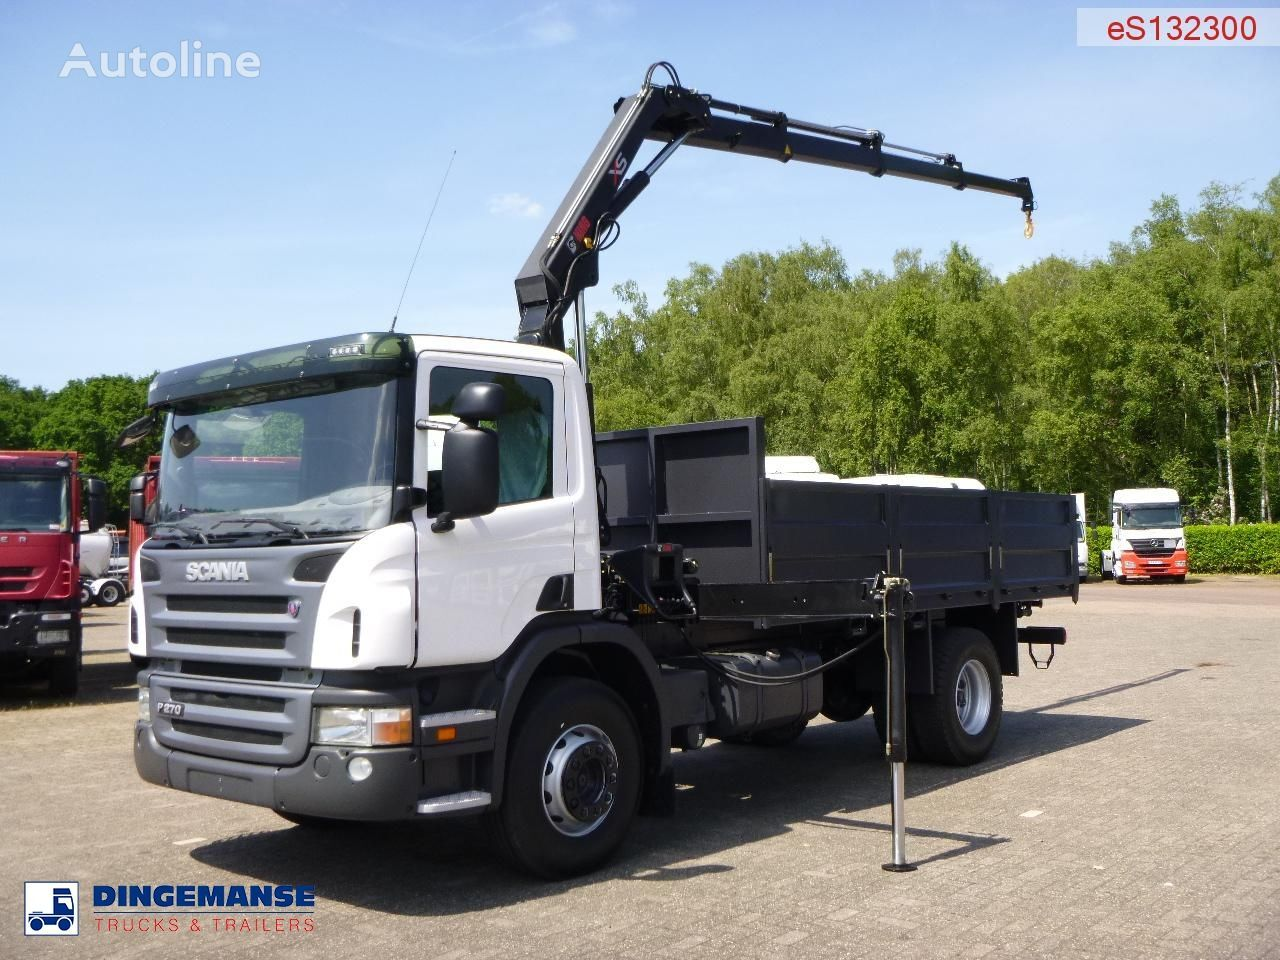 ny SCANIA P270 LB 4X2 Hiab XS 099 B-3 Duo / NEW/UNUSED lastebil flatbed